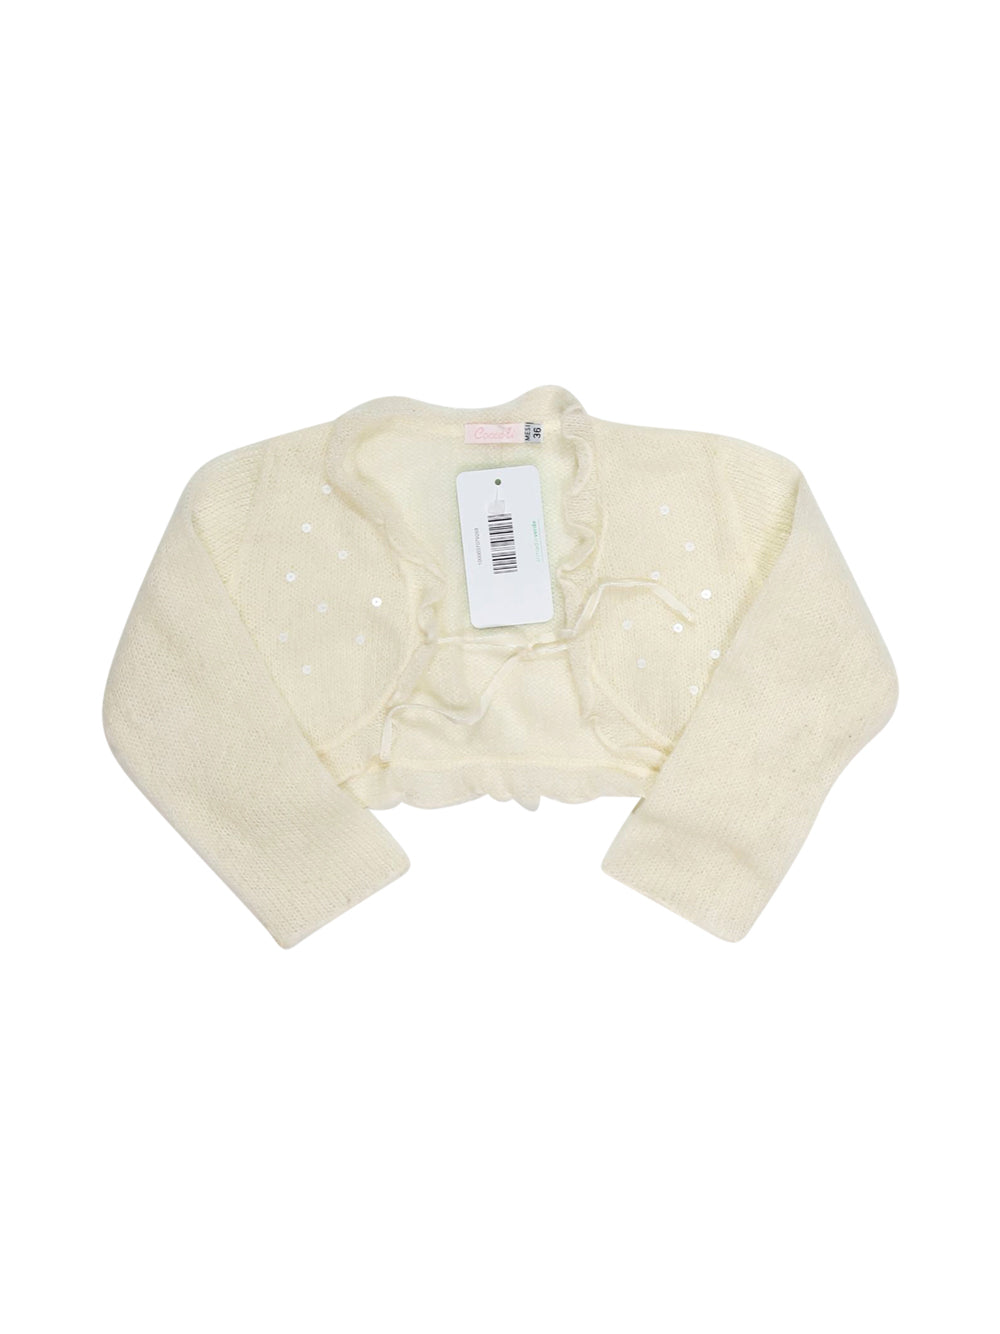 Front photo of Preloved Coccoli White Girl's bolero - size 2-3 yrs